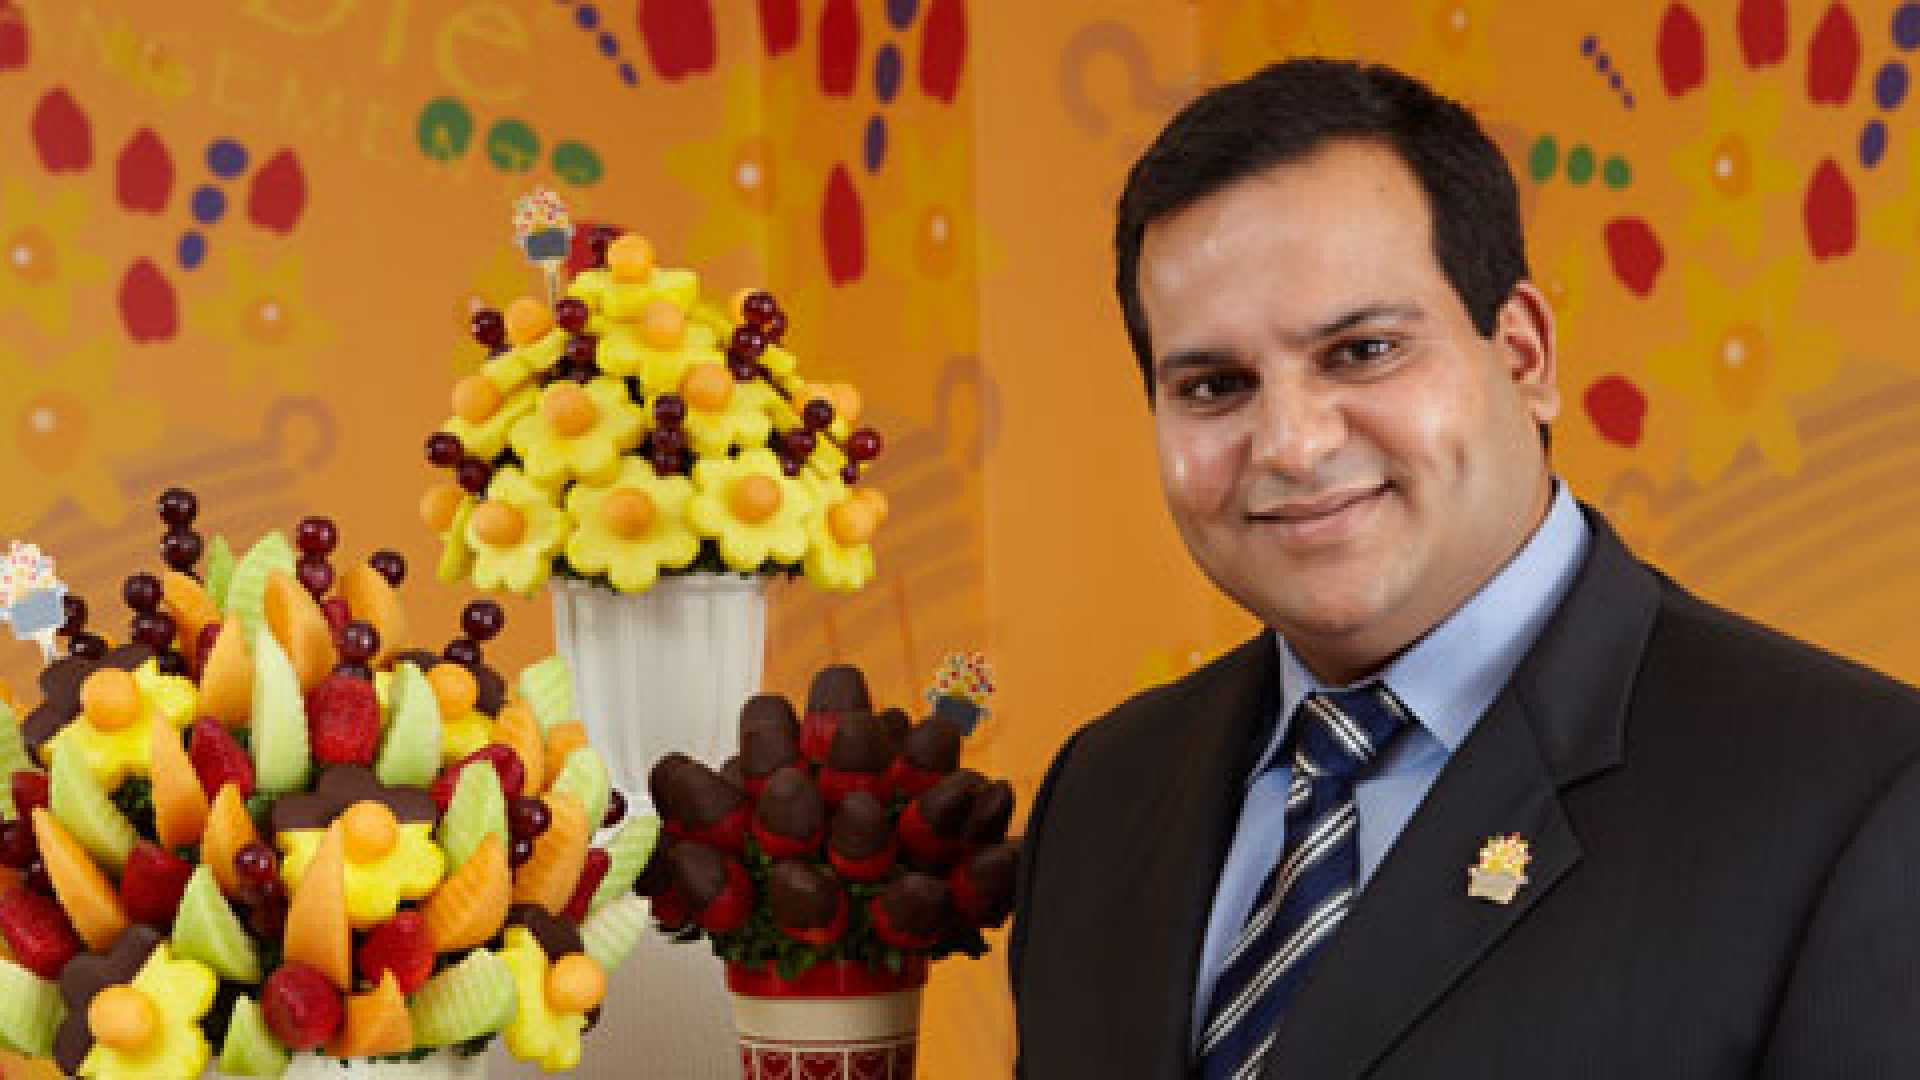 Edible Arrangements's co-founder and COO Kamran Farid talks about supply chain challenges and solutions as the company continues to expand overseas.